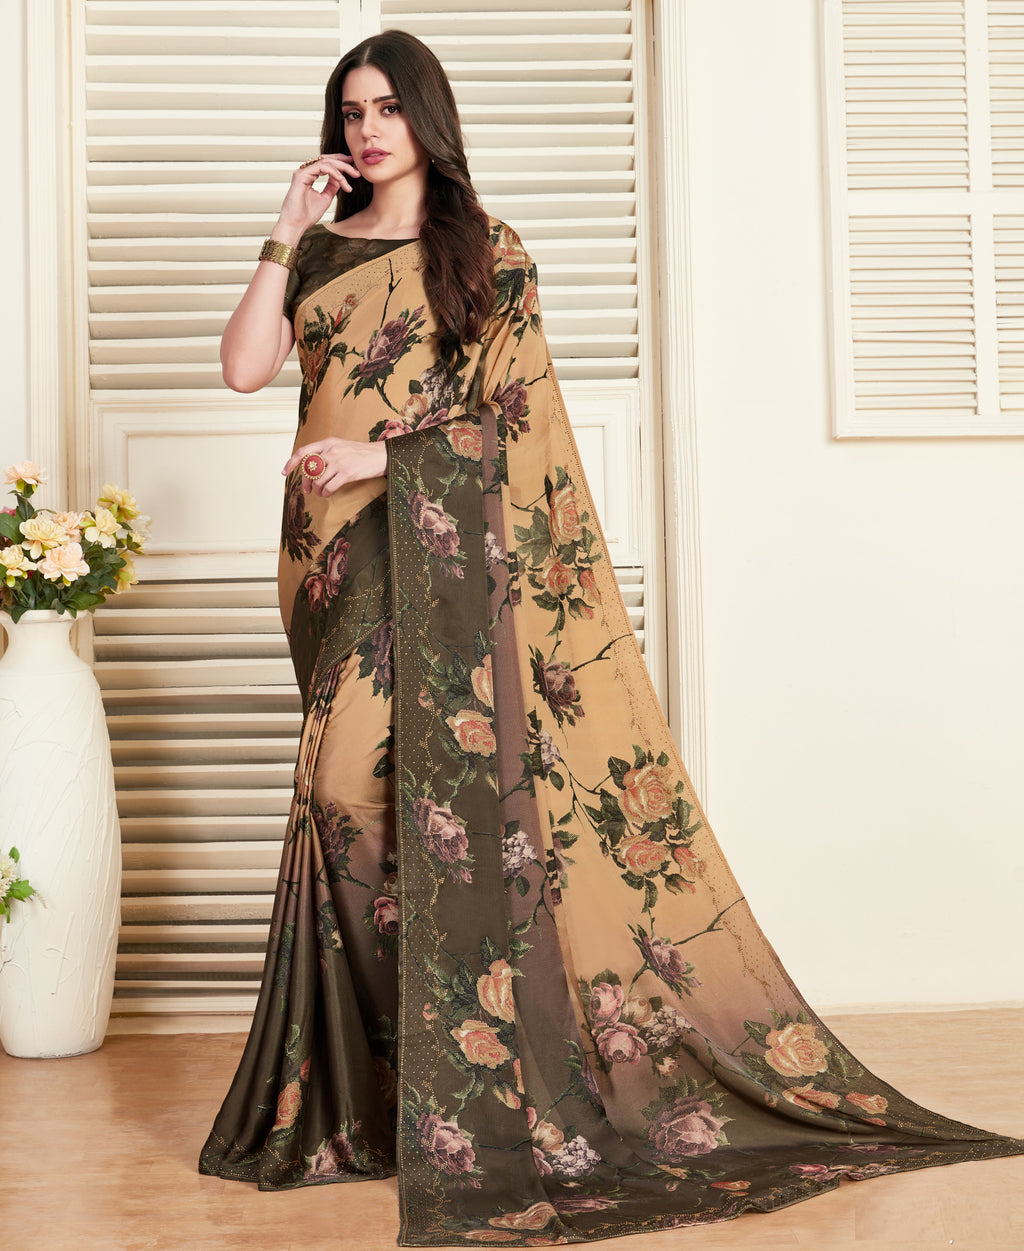 Light Orange Color Crepe Silk Printed Office Party Sarees NYF-6141